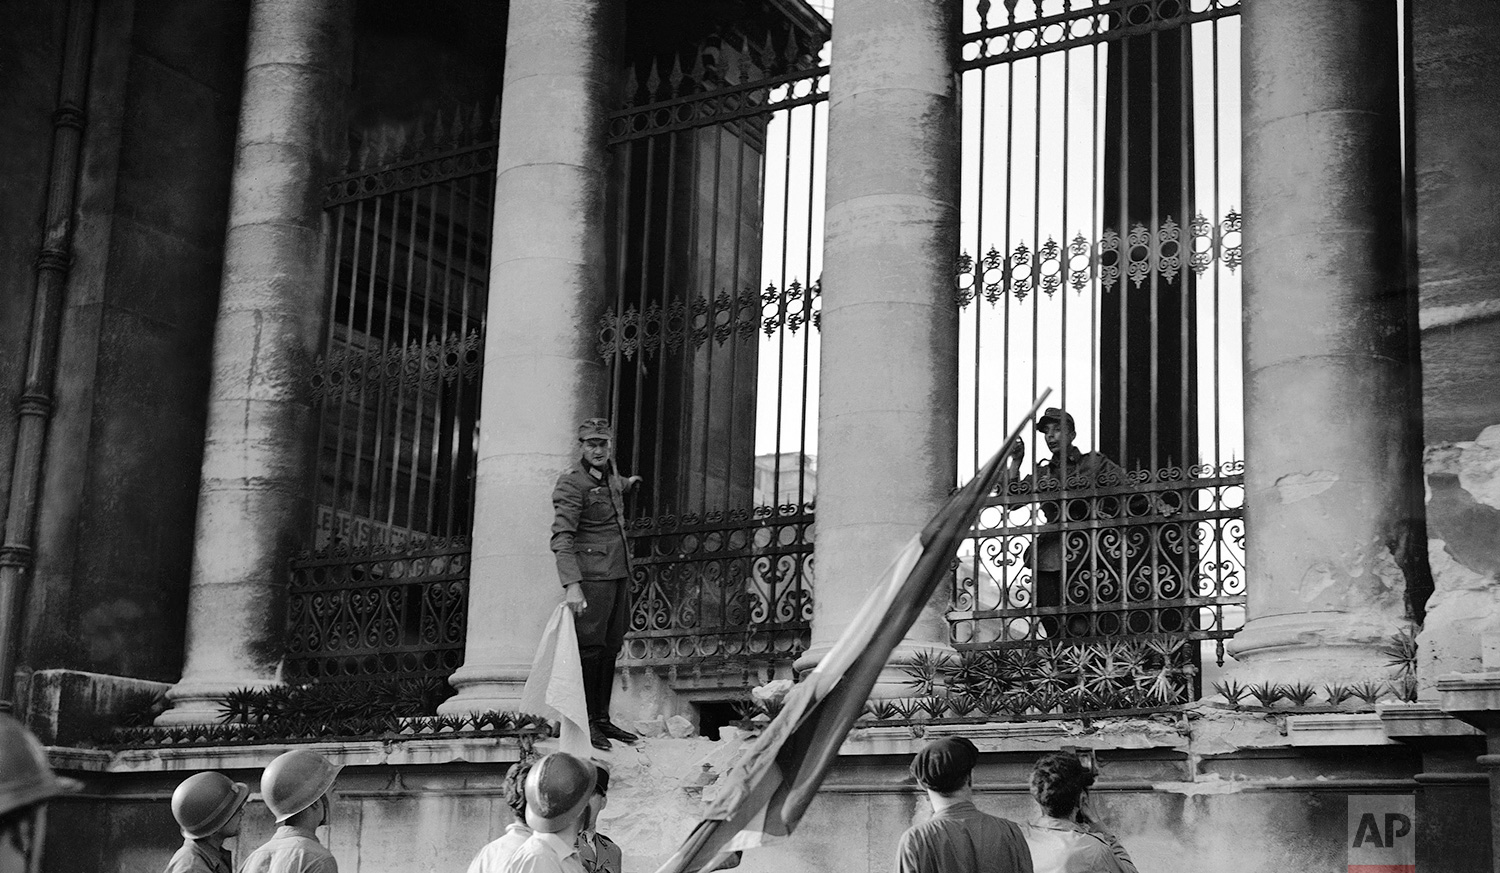 A German officer standing beside one of the columns of the Chamber of Deputies building, in Paris, France on August 30, 1944, holds white flag of truce as he negotiates surrender of German forces within the building with a French soldier carrying the Tricolor. Frenchman waits to hoist flag over the building, where one of the last armed clashes took place before the capital was cleared of the Germans. (AP Photo/Harry Harris)